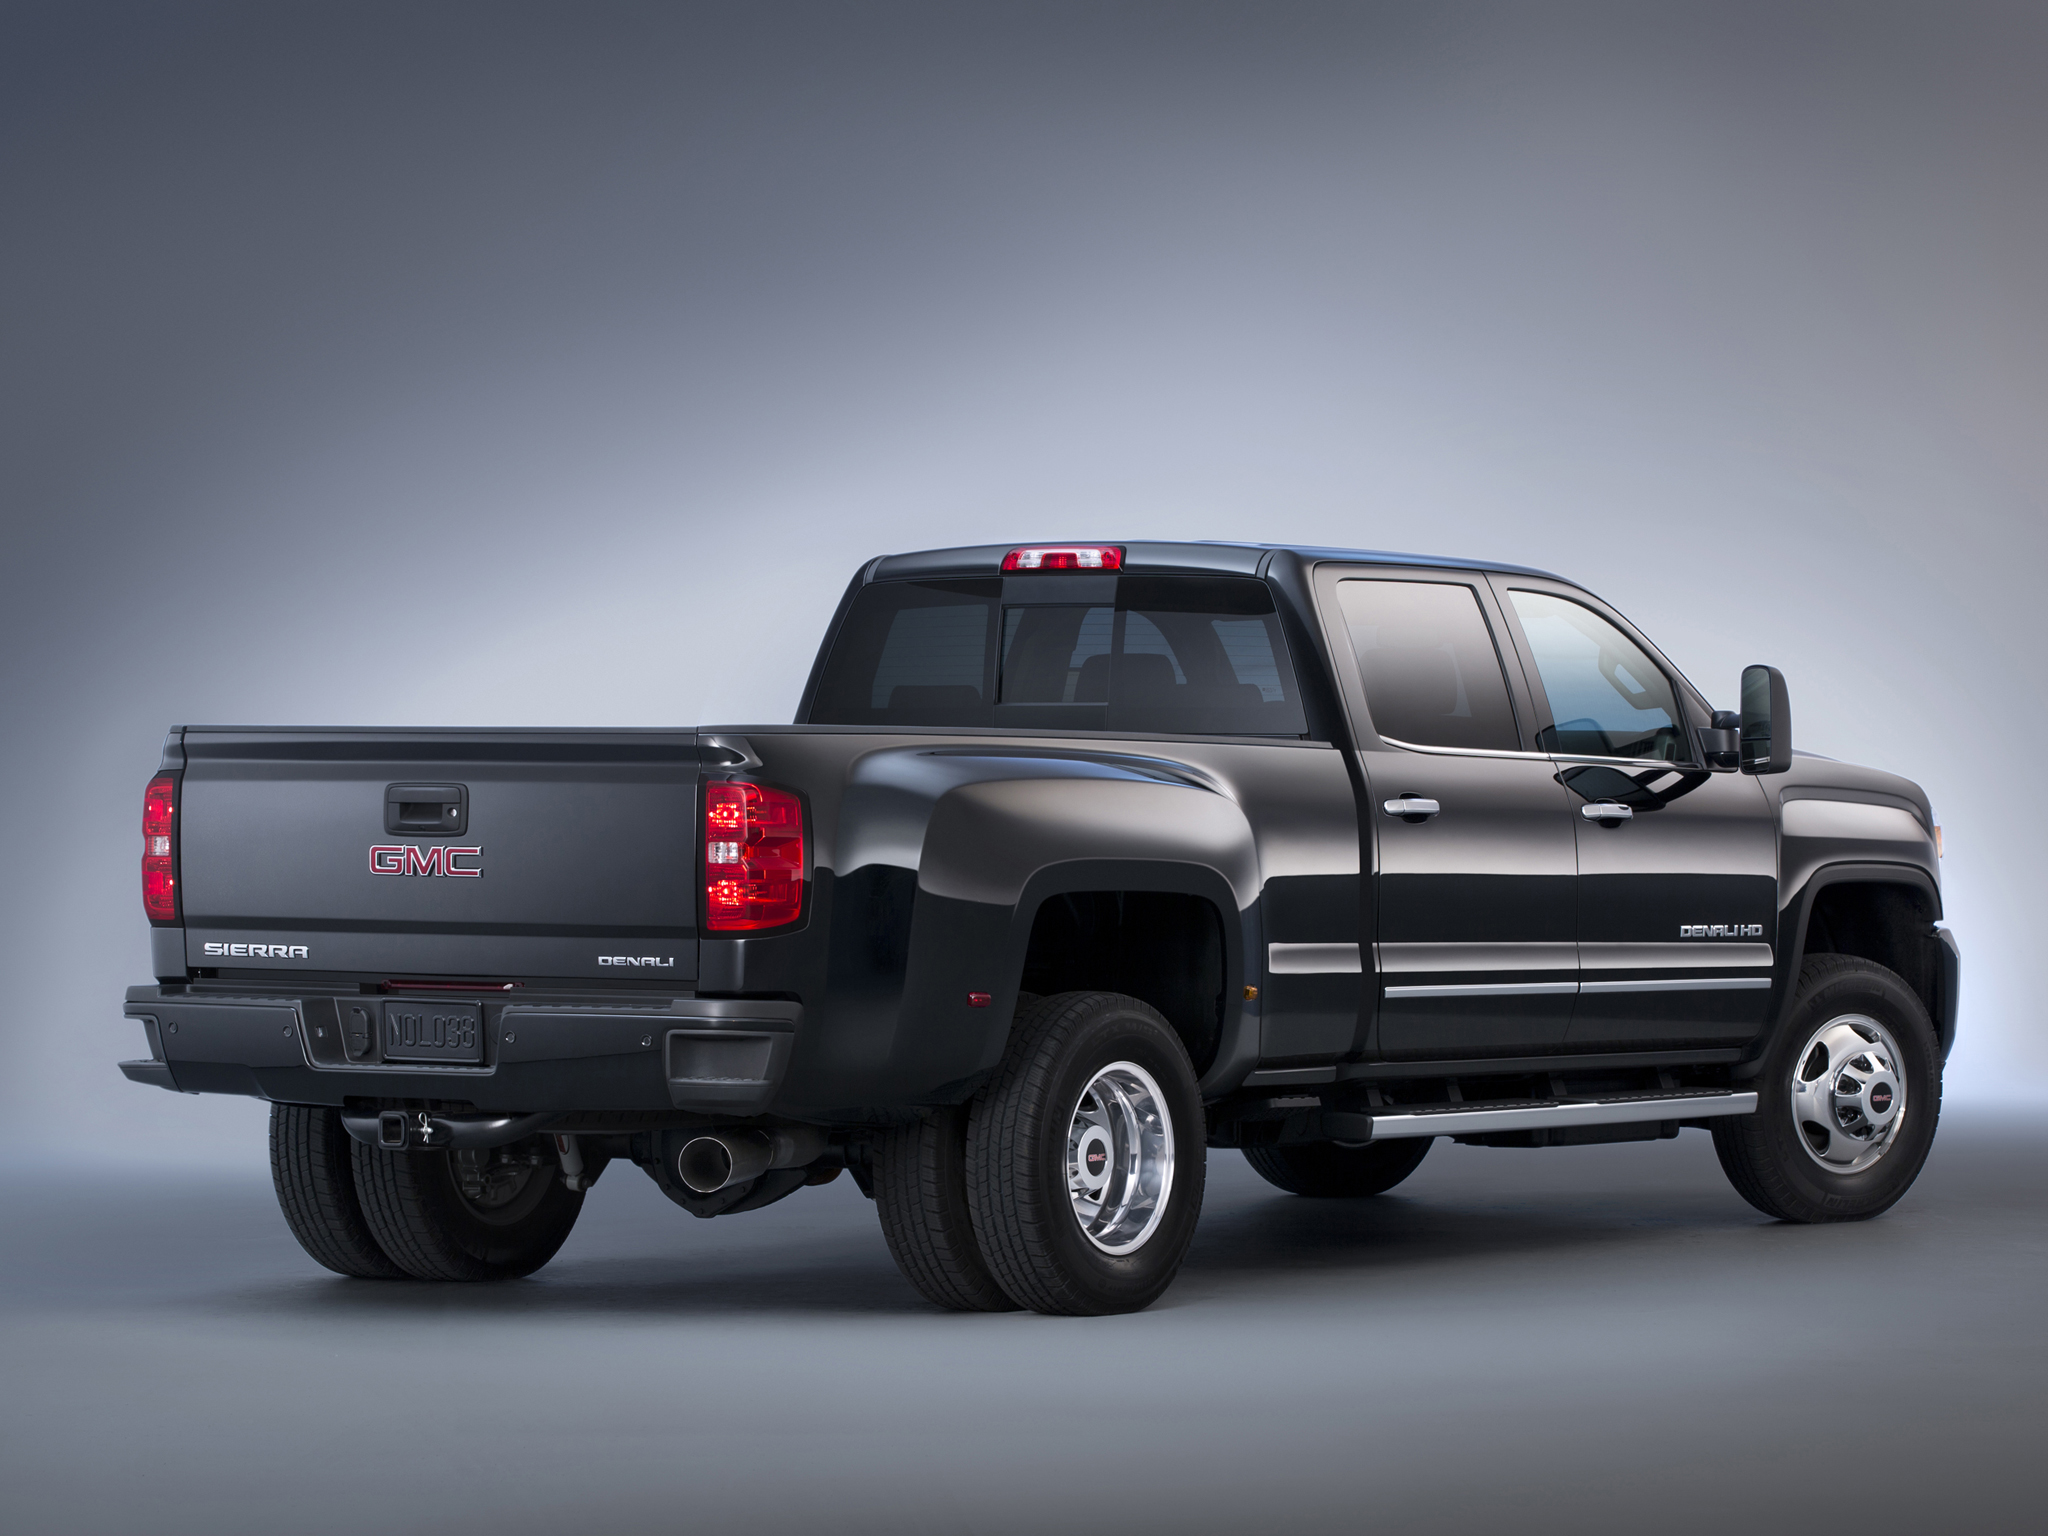 2014 GMC Sierra 3500hd #15